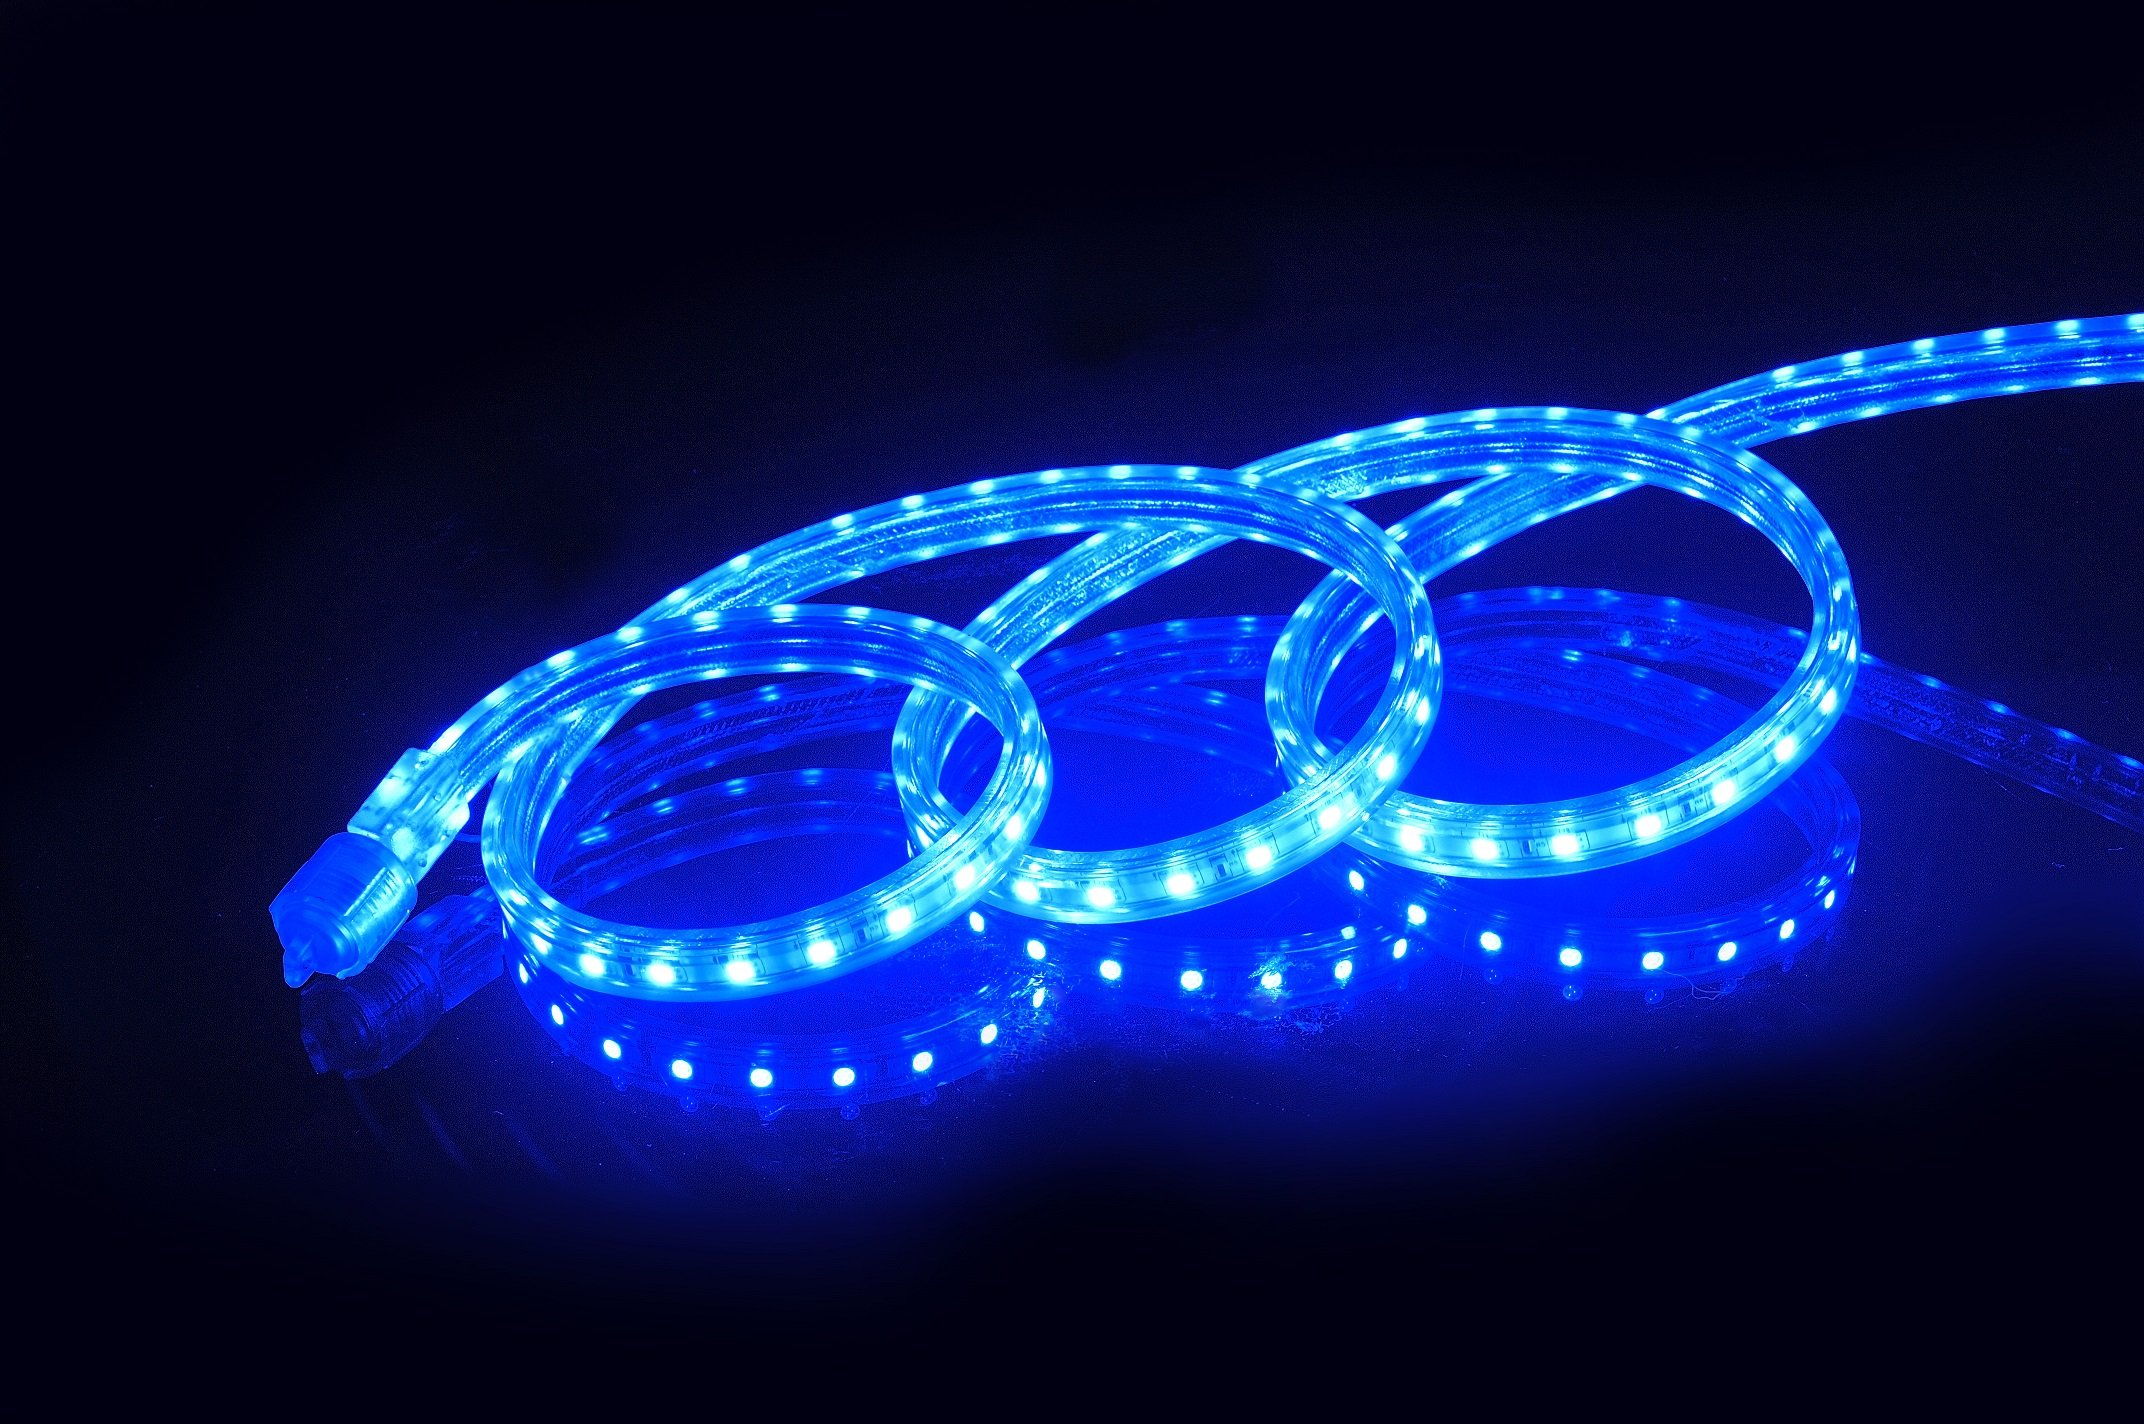 CBConcept UL Listed, 65 Feet,Super Bright 18000 Lumen, Blue, Dimmable, 110-120V AC Flexible Flat LED Strip Rope Light, 1200 Units 5050 SMD LEDs, Indoor/Outdoor Use, [Ready to use]